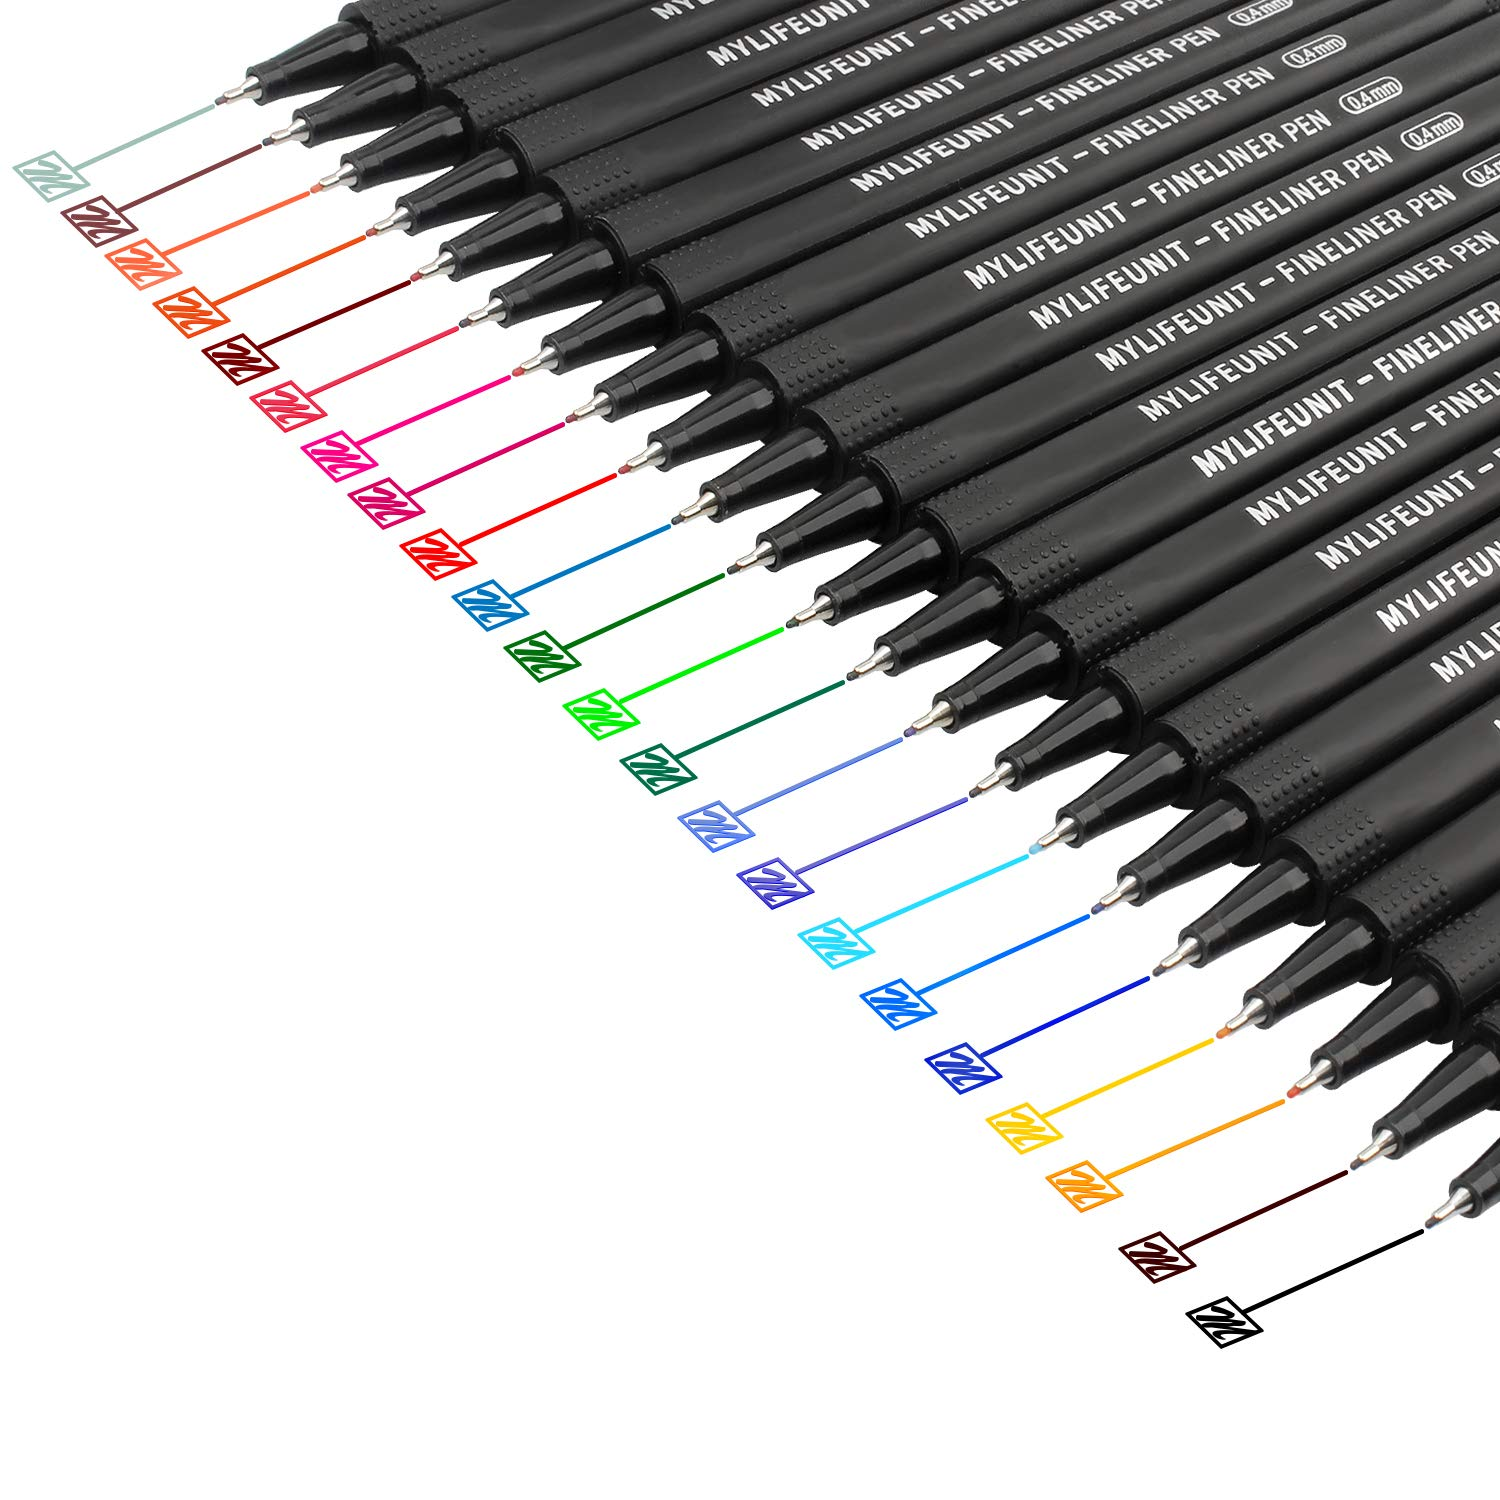 MyLifeUNIT Fineliner Color Pen Set, 0.4mm Colored Fine Liner Sketch Drawing Pen, Pack of 22 Assorted Colors